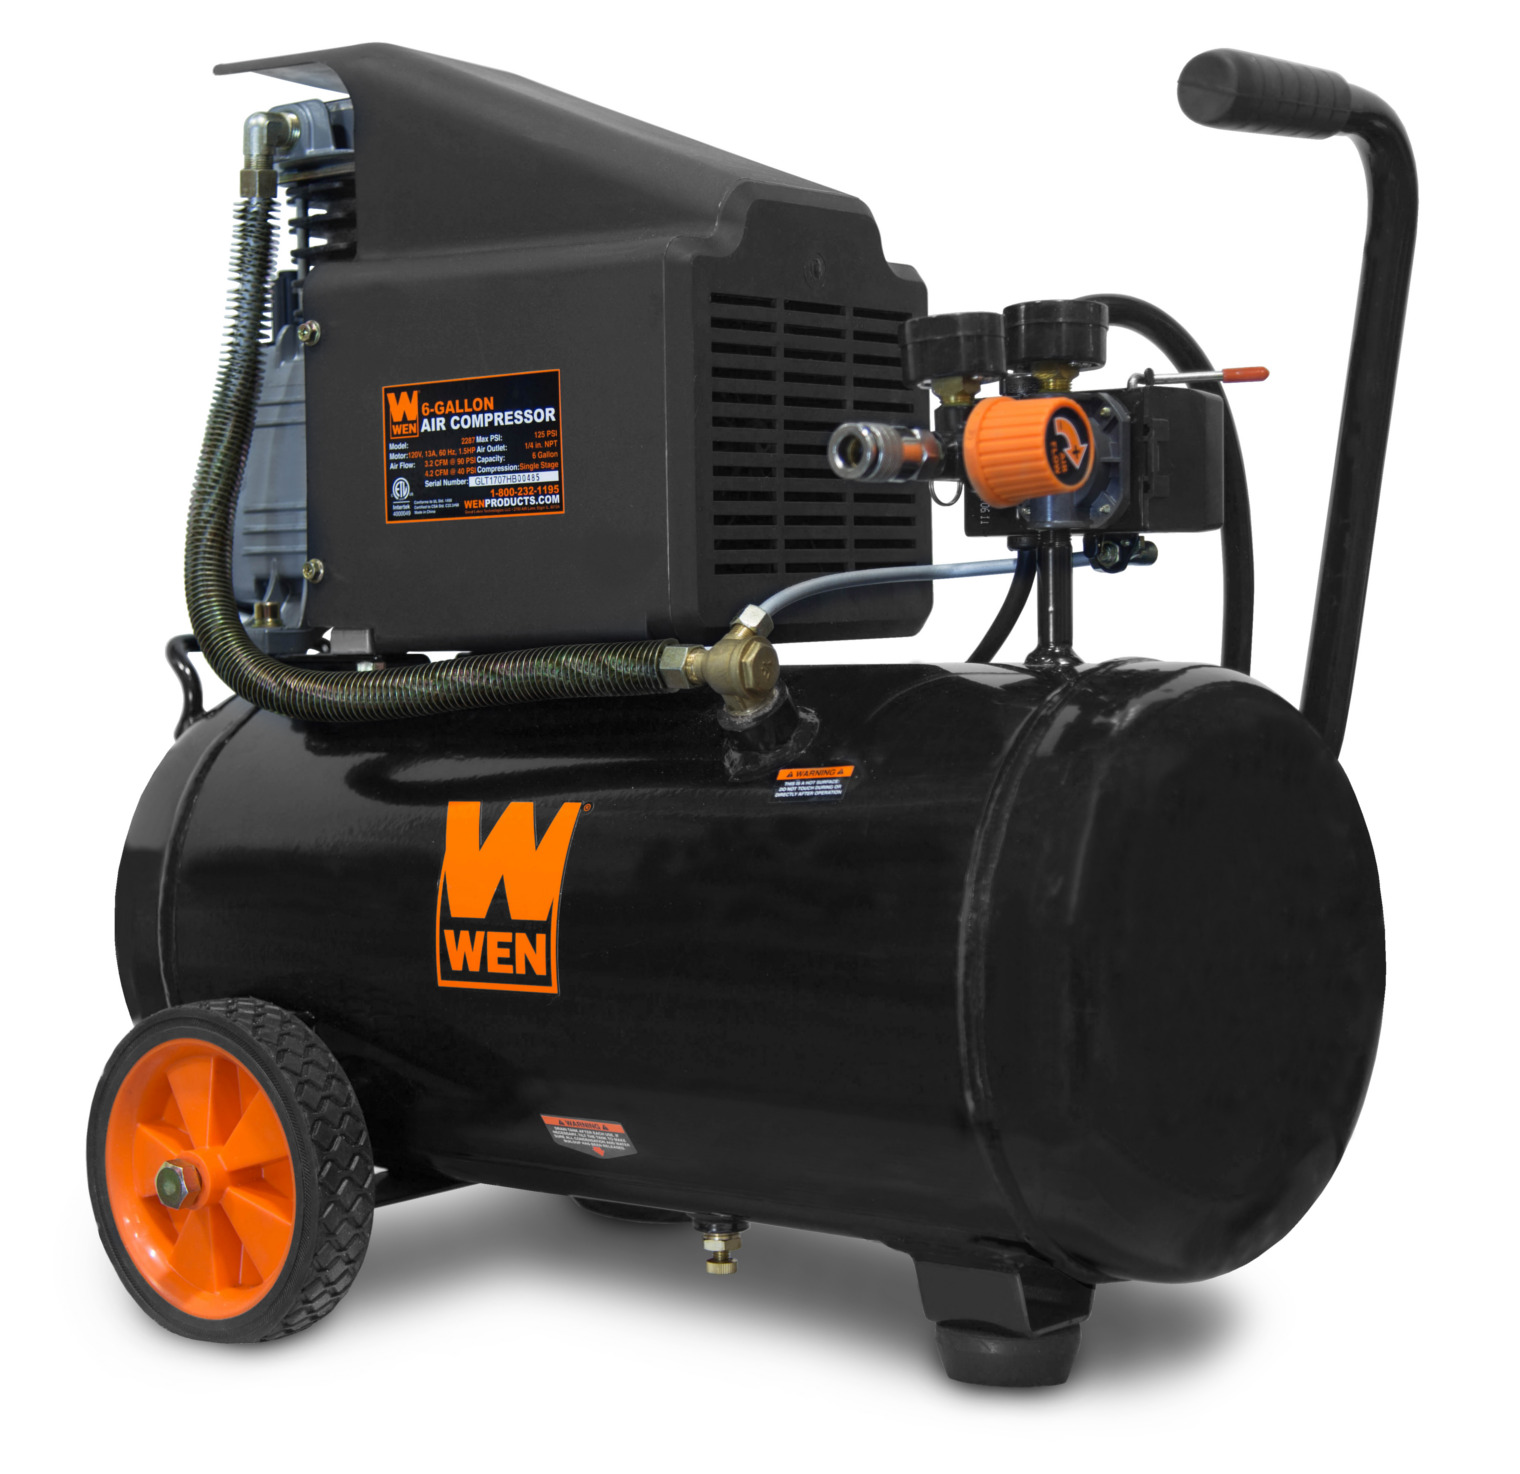 WEN 6-Gallon Oil-Lubricated Portable Horizontal Air Compressor by WEN